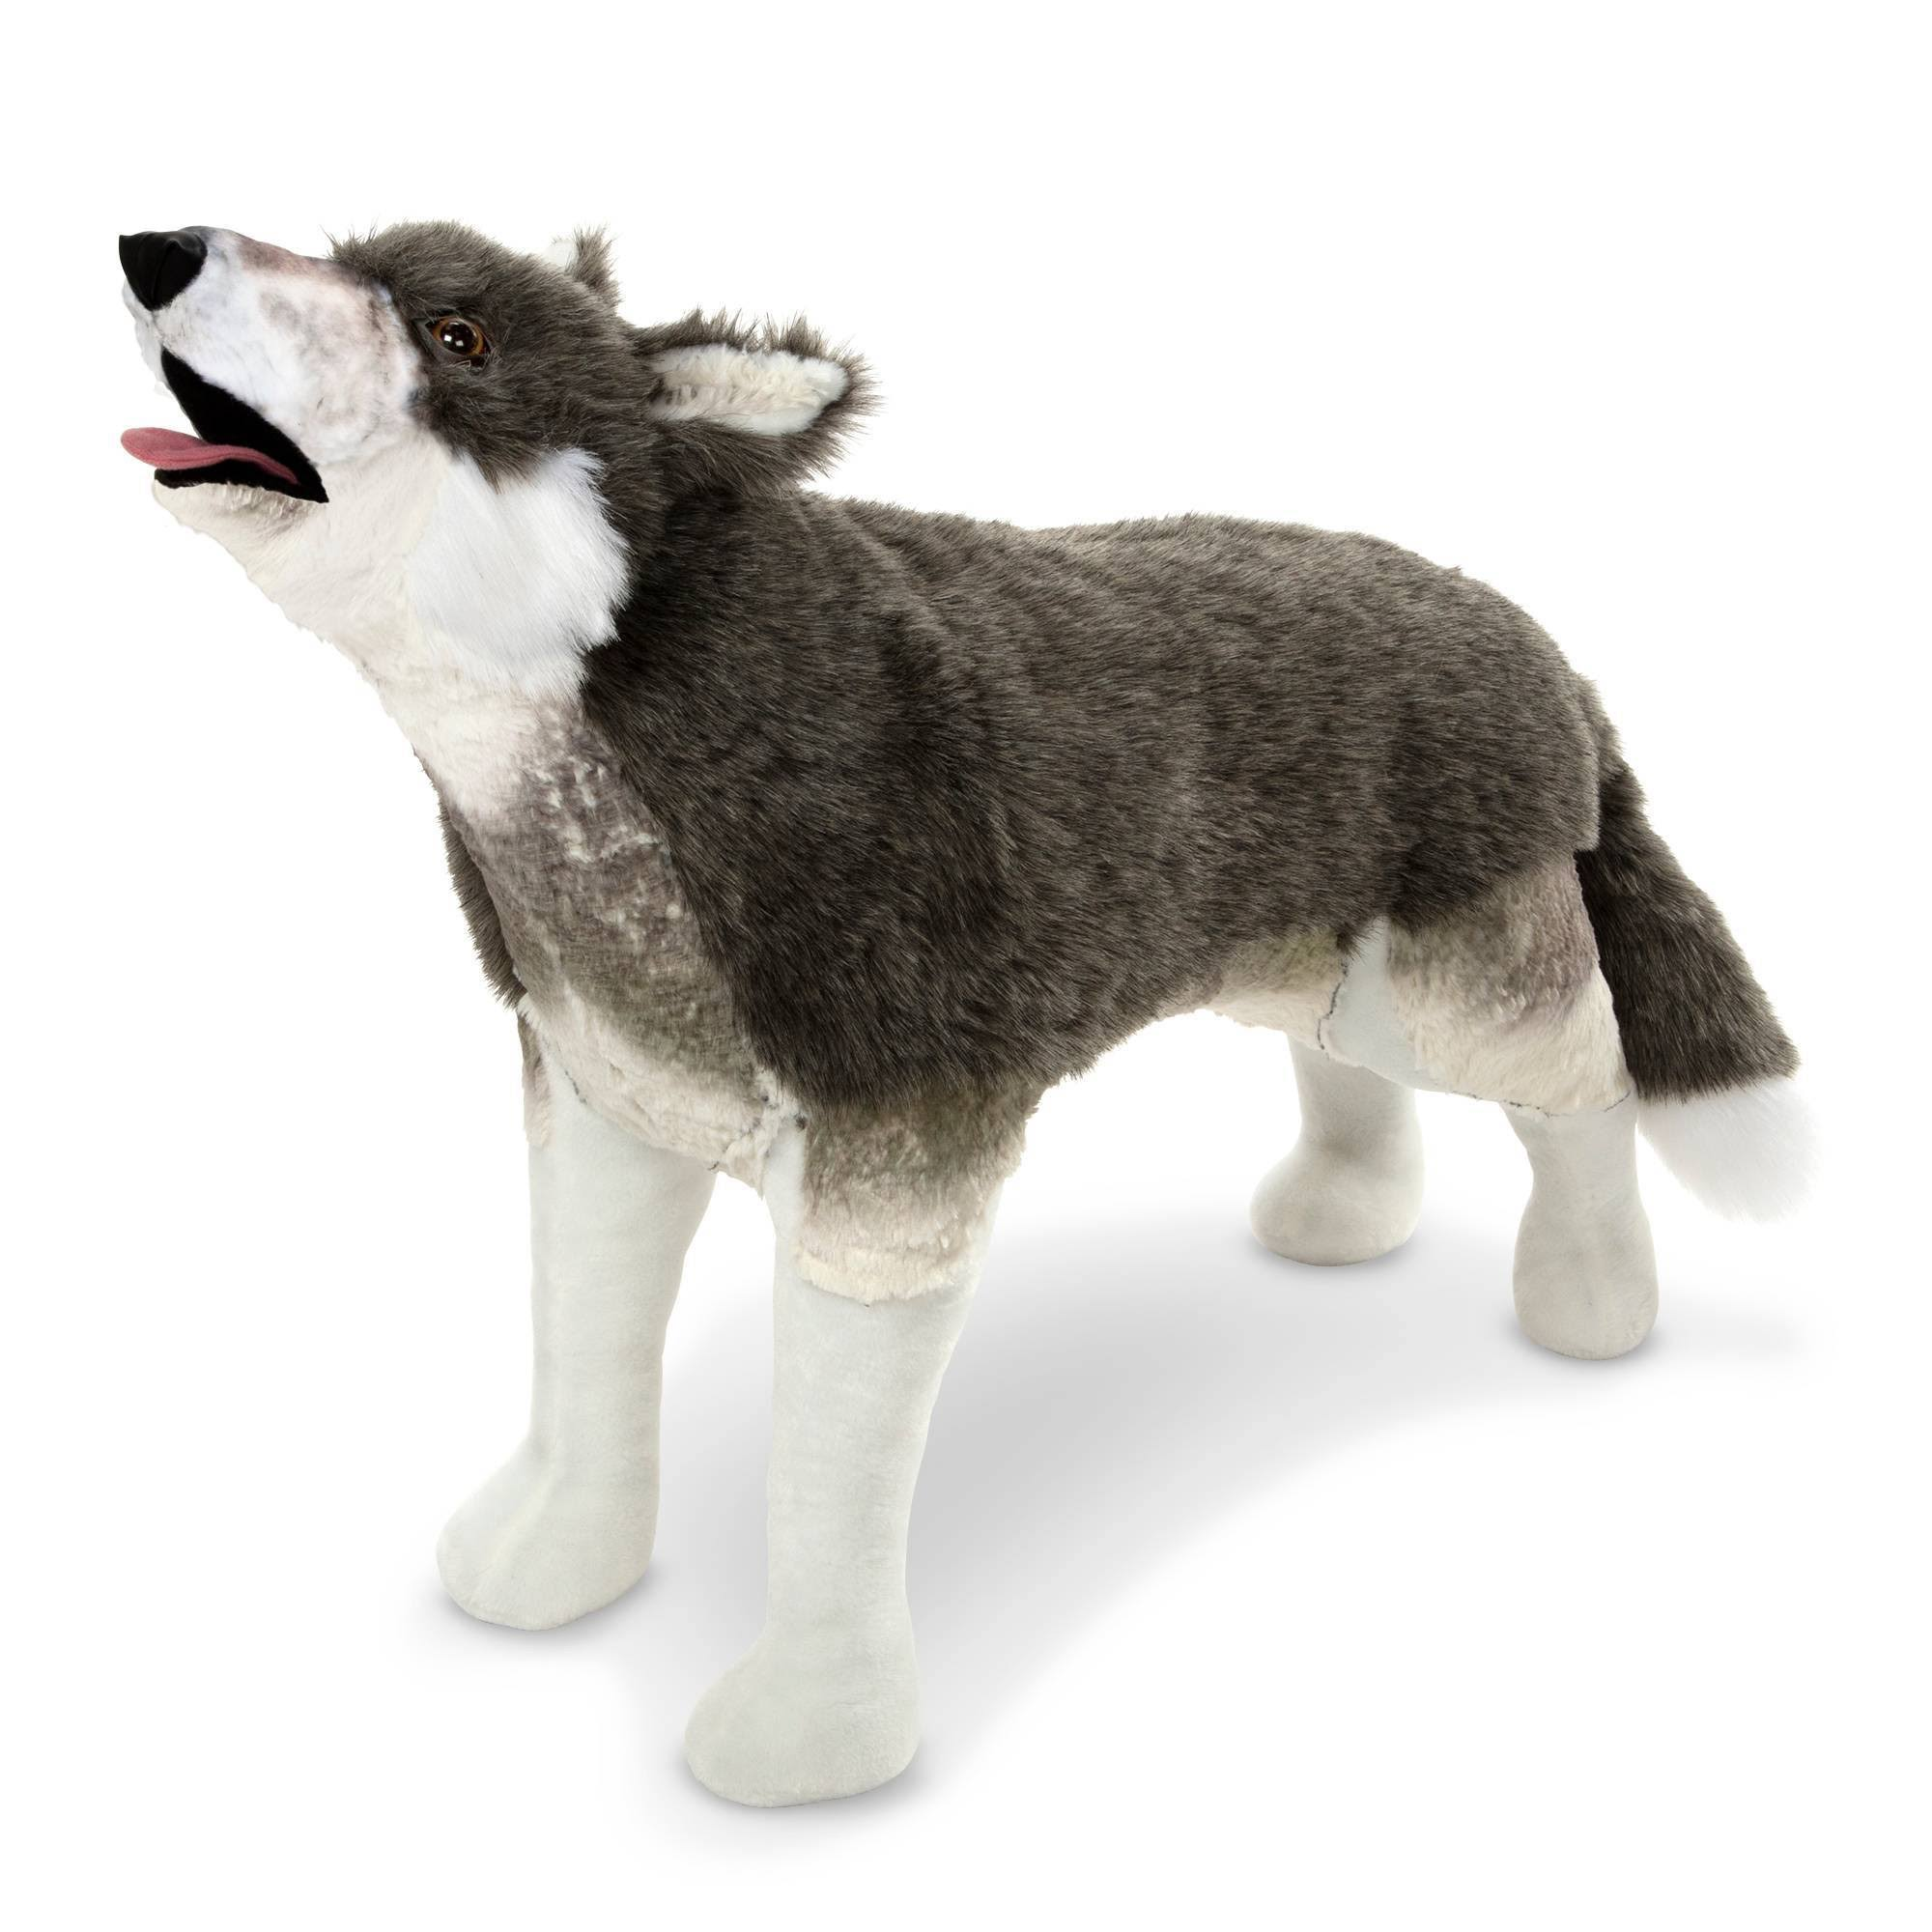 Melissa & Doug Giant Lifelike Plush Gray Wolf Standing Stuffed Animal